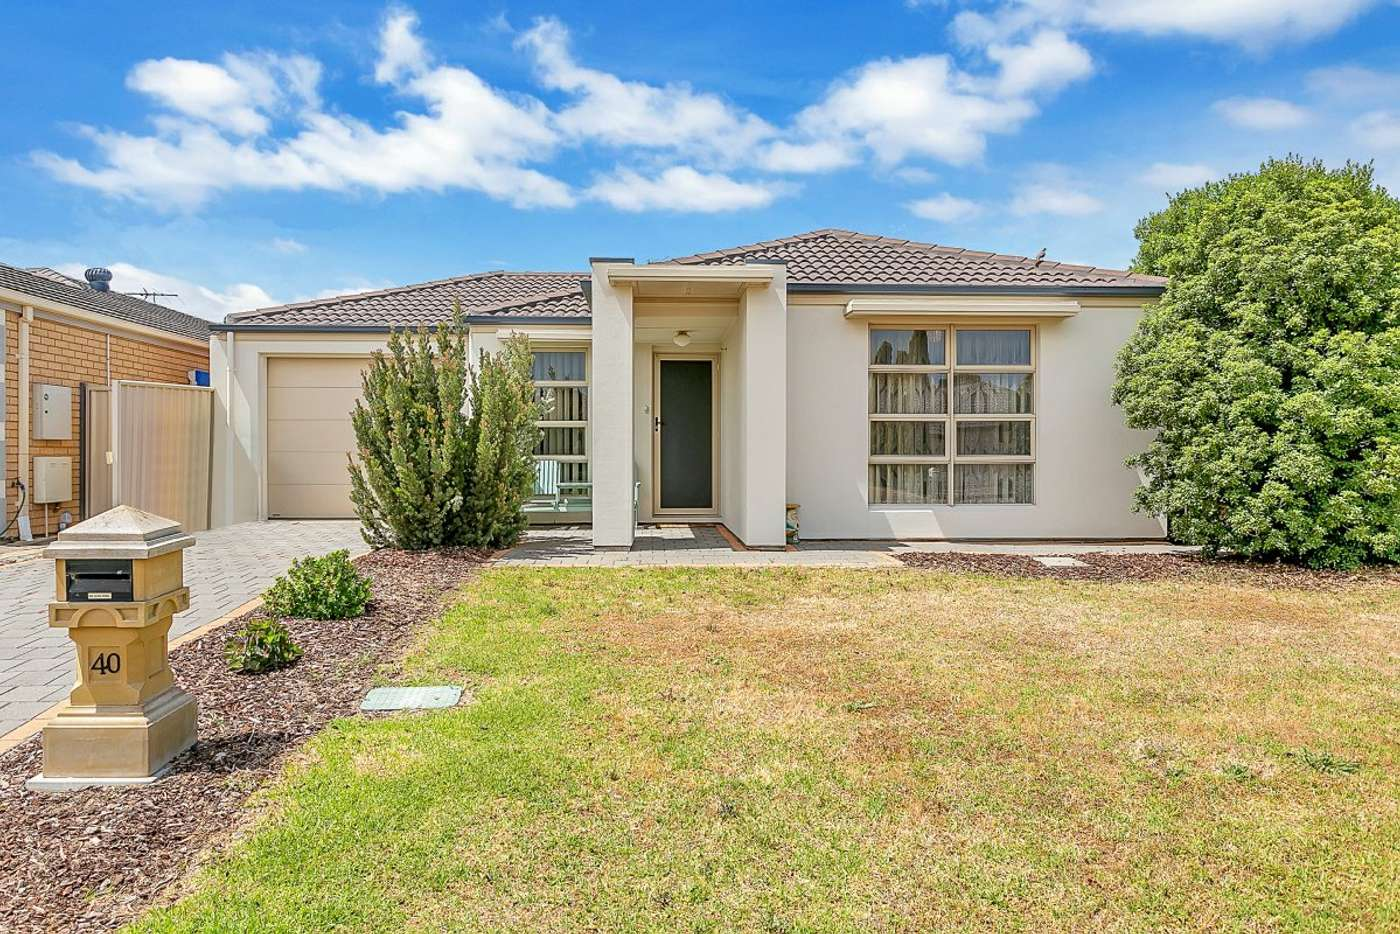 Main view of Homely house listing, 40 Seahaven Way, Aldinga Beach SA 5173